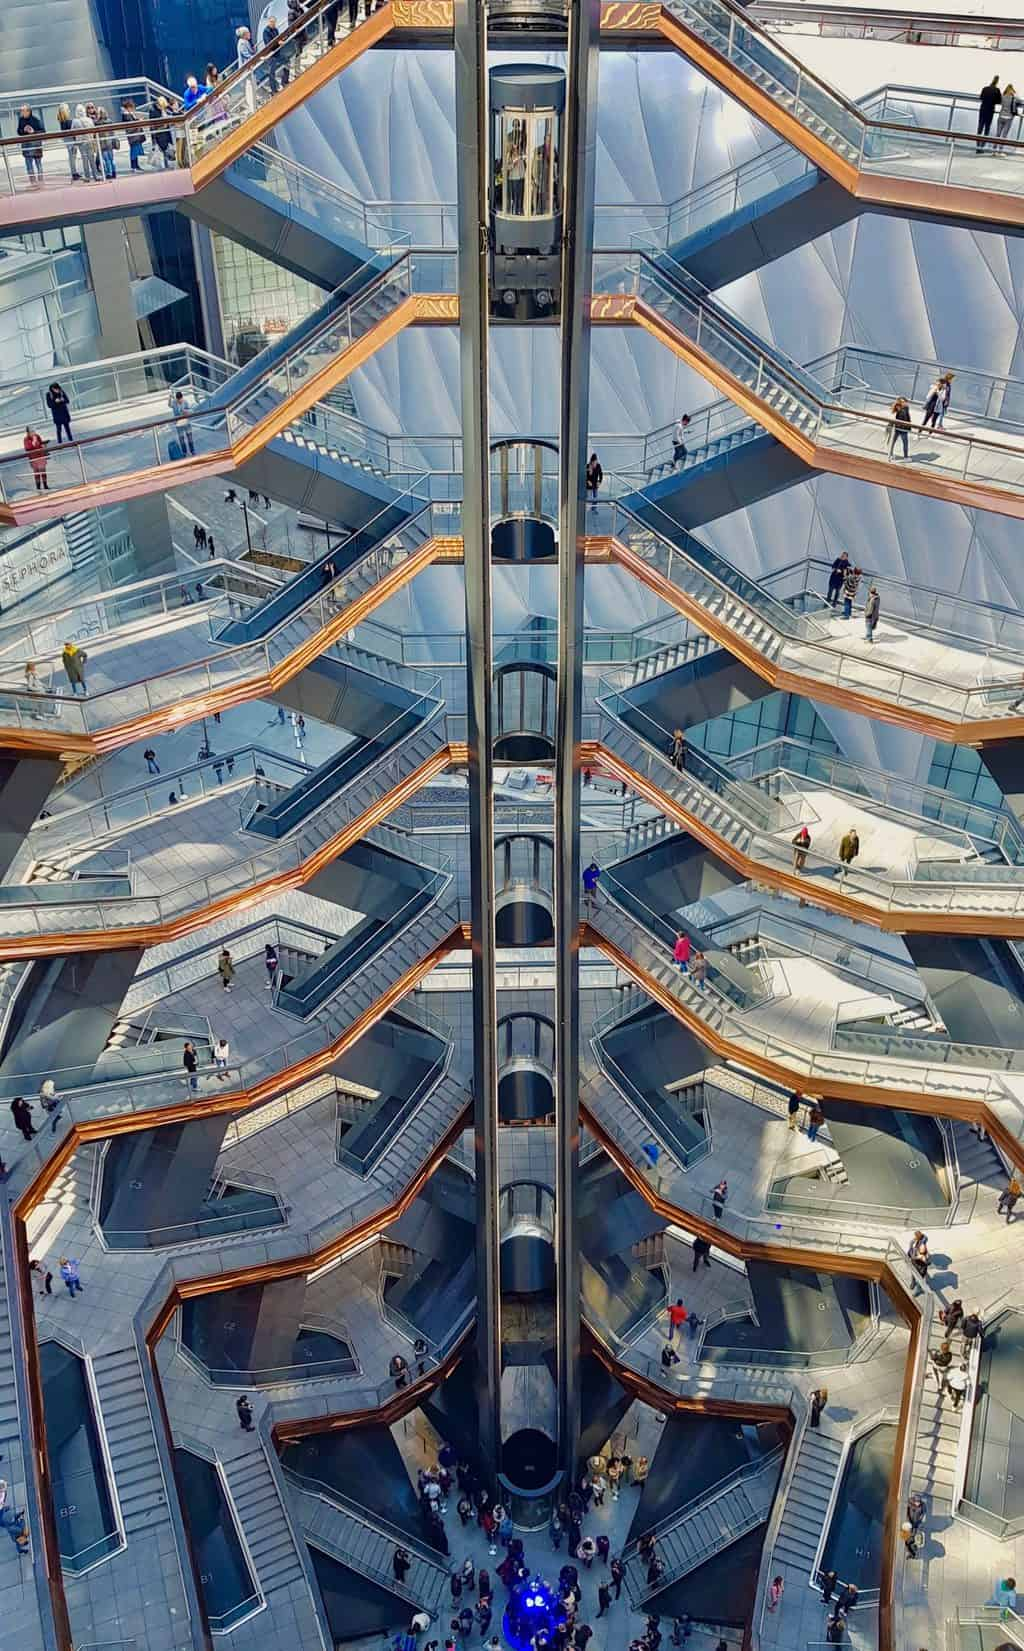 A unique look at the interior of the Vessel in NYC's Hudson Yards.